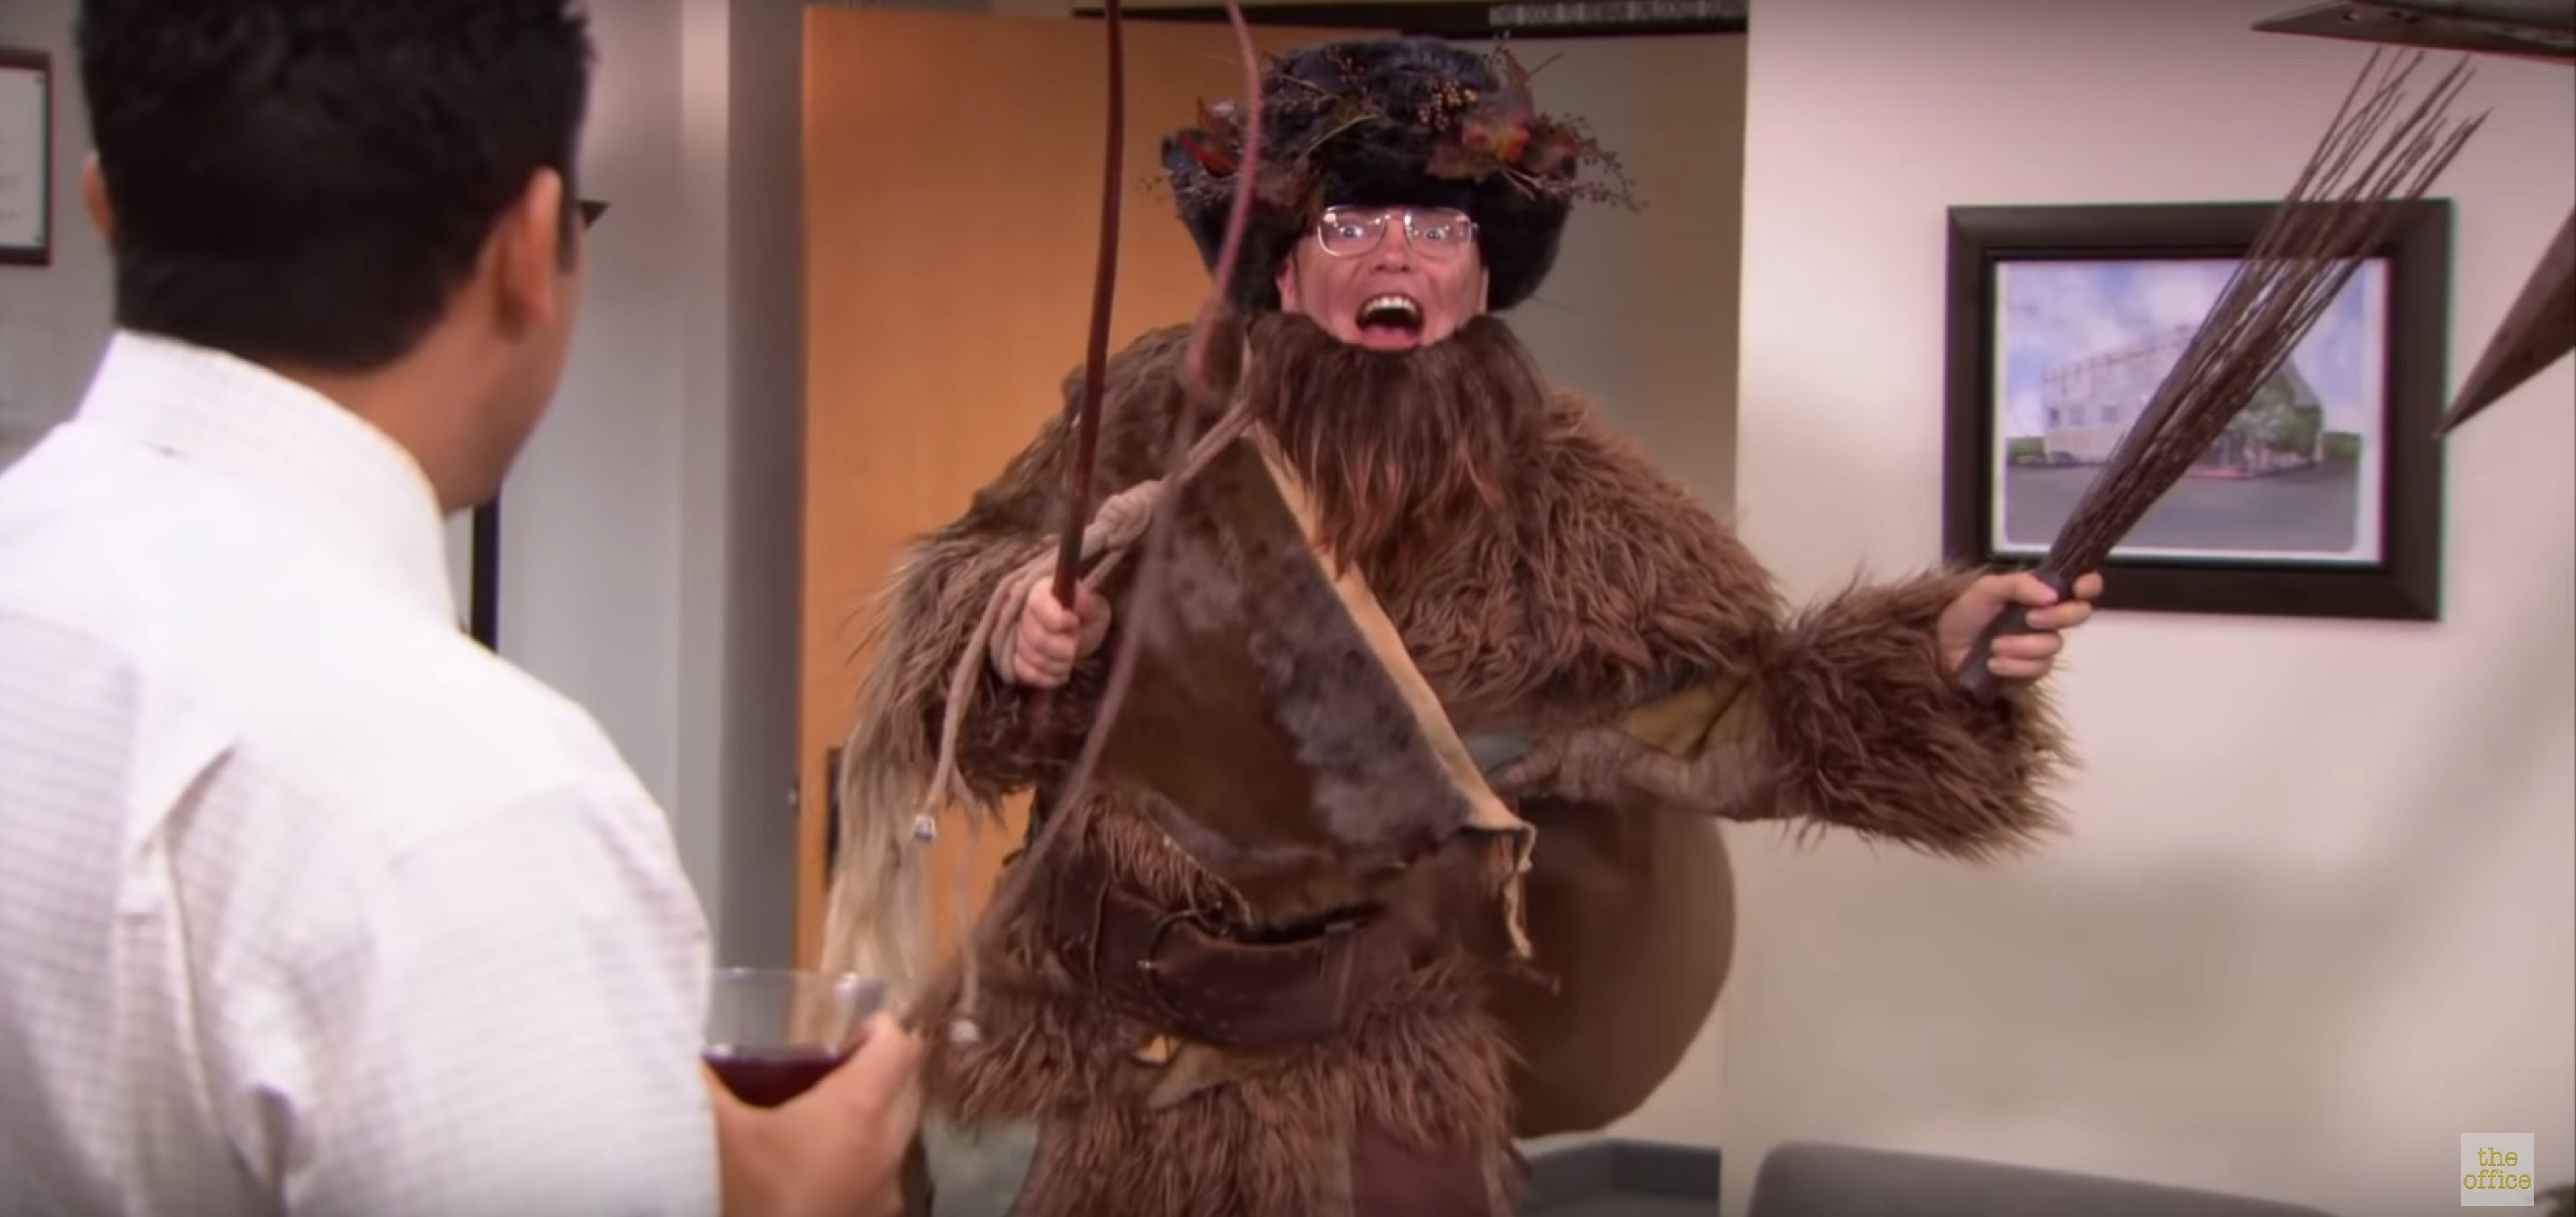 Dwight Schrute, played by Rainn Wilson, dressed as the Belsnickel in the hit television show The Office (YouTube screenshot/ The Office US)